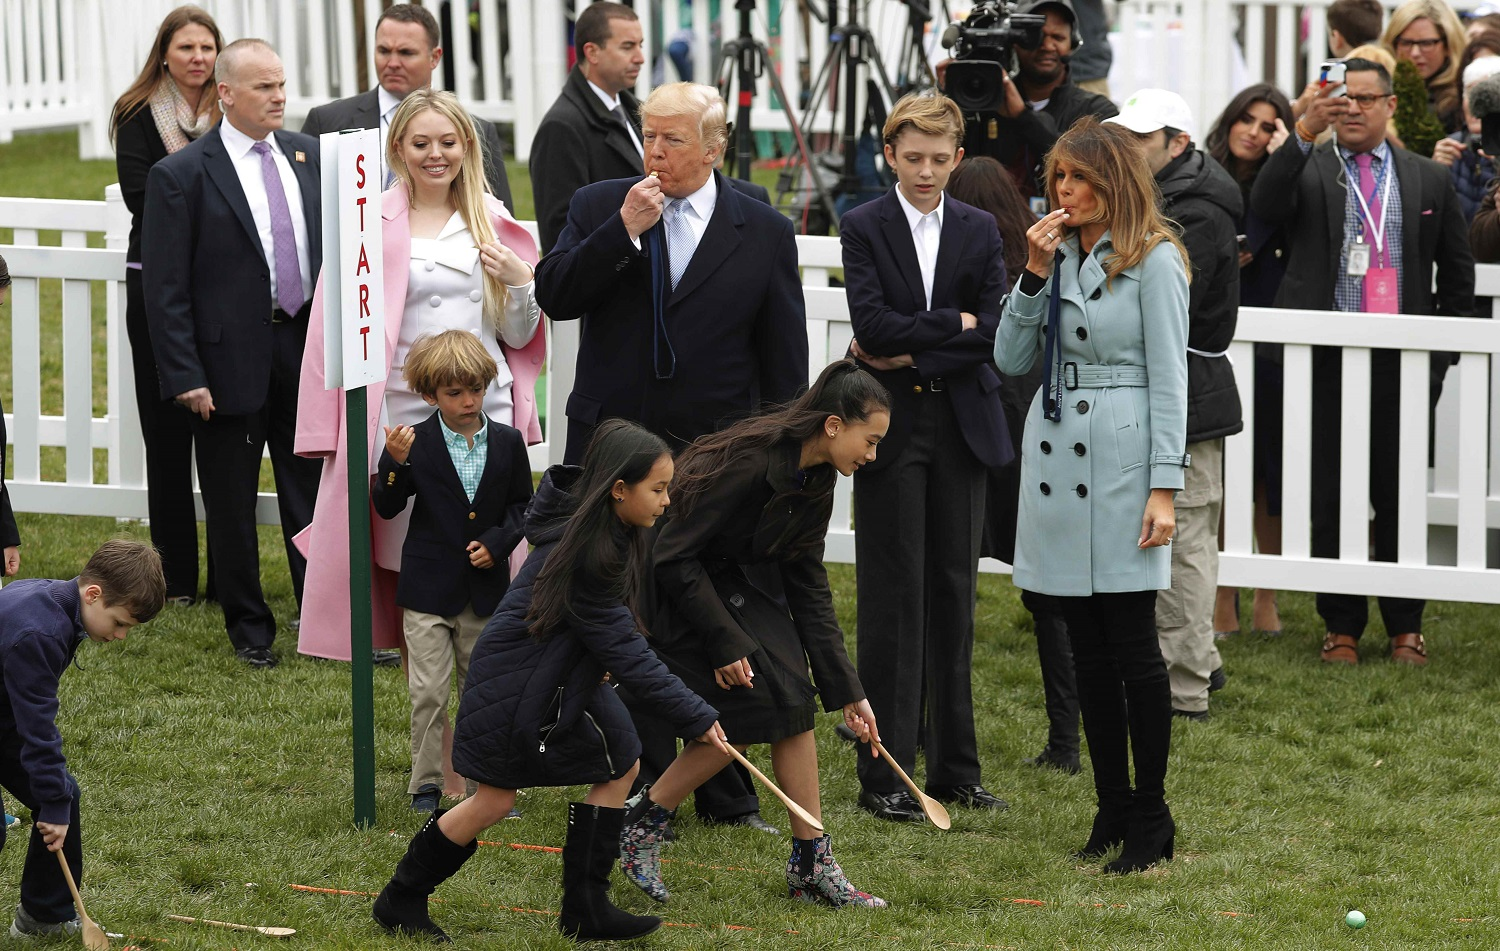 President Donald Trump and first lady Melania Trump blow whistles for children gathered for the annual White House Easter Egg Roll as they stand with his daughter Tiffany and their son Barron on the South Lawn of the White House in Washington, U.S., April 2, 2018. REUTERS/Carlos Barria